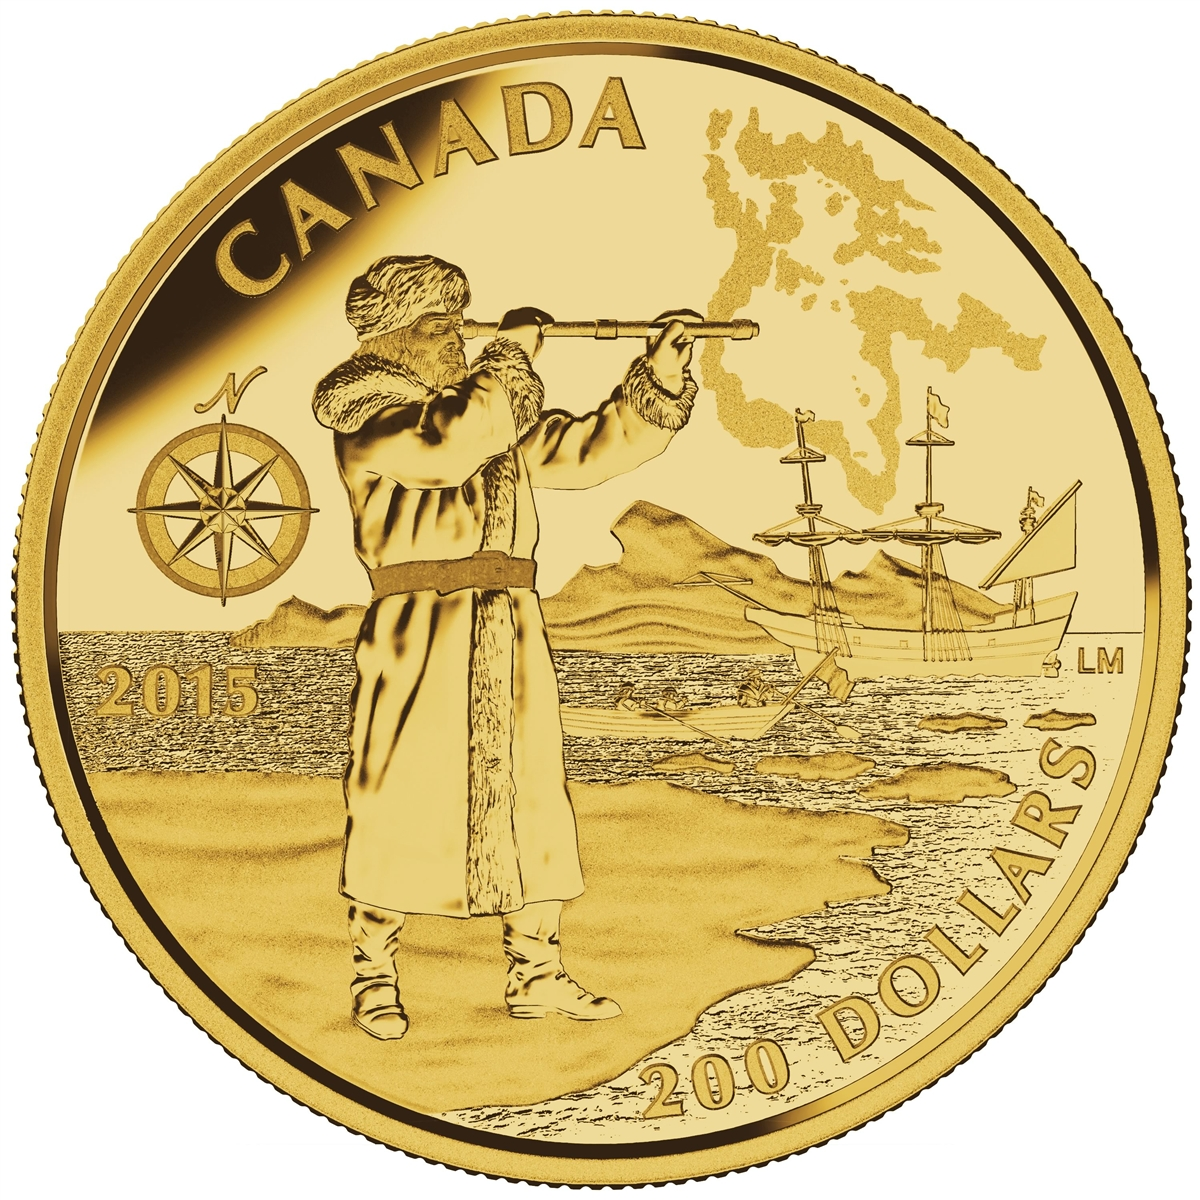 2015 200 Pure Gold Coin Great Canadian Explorers Henry